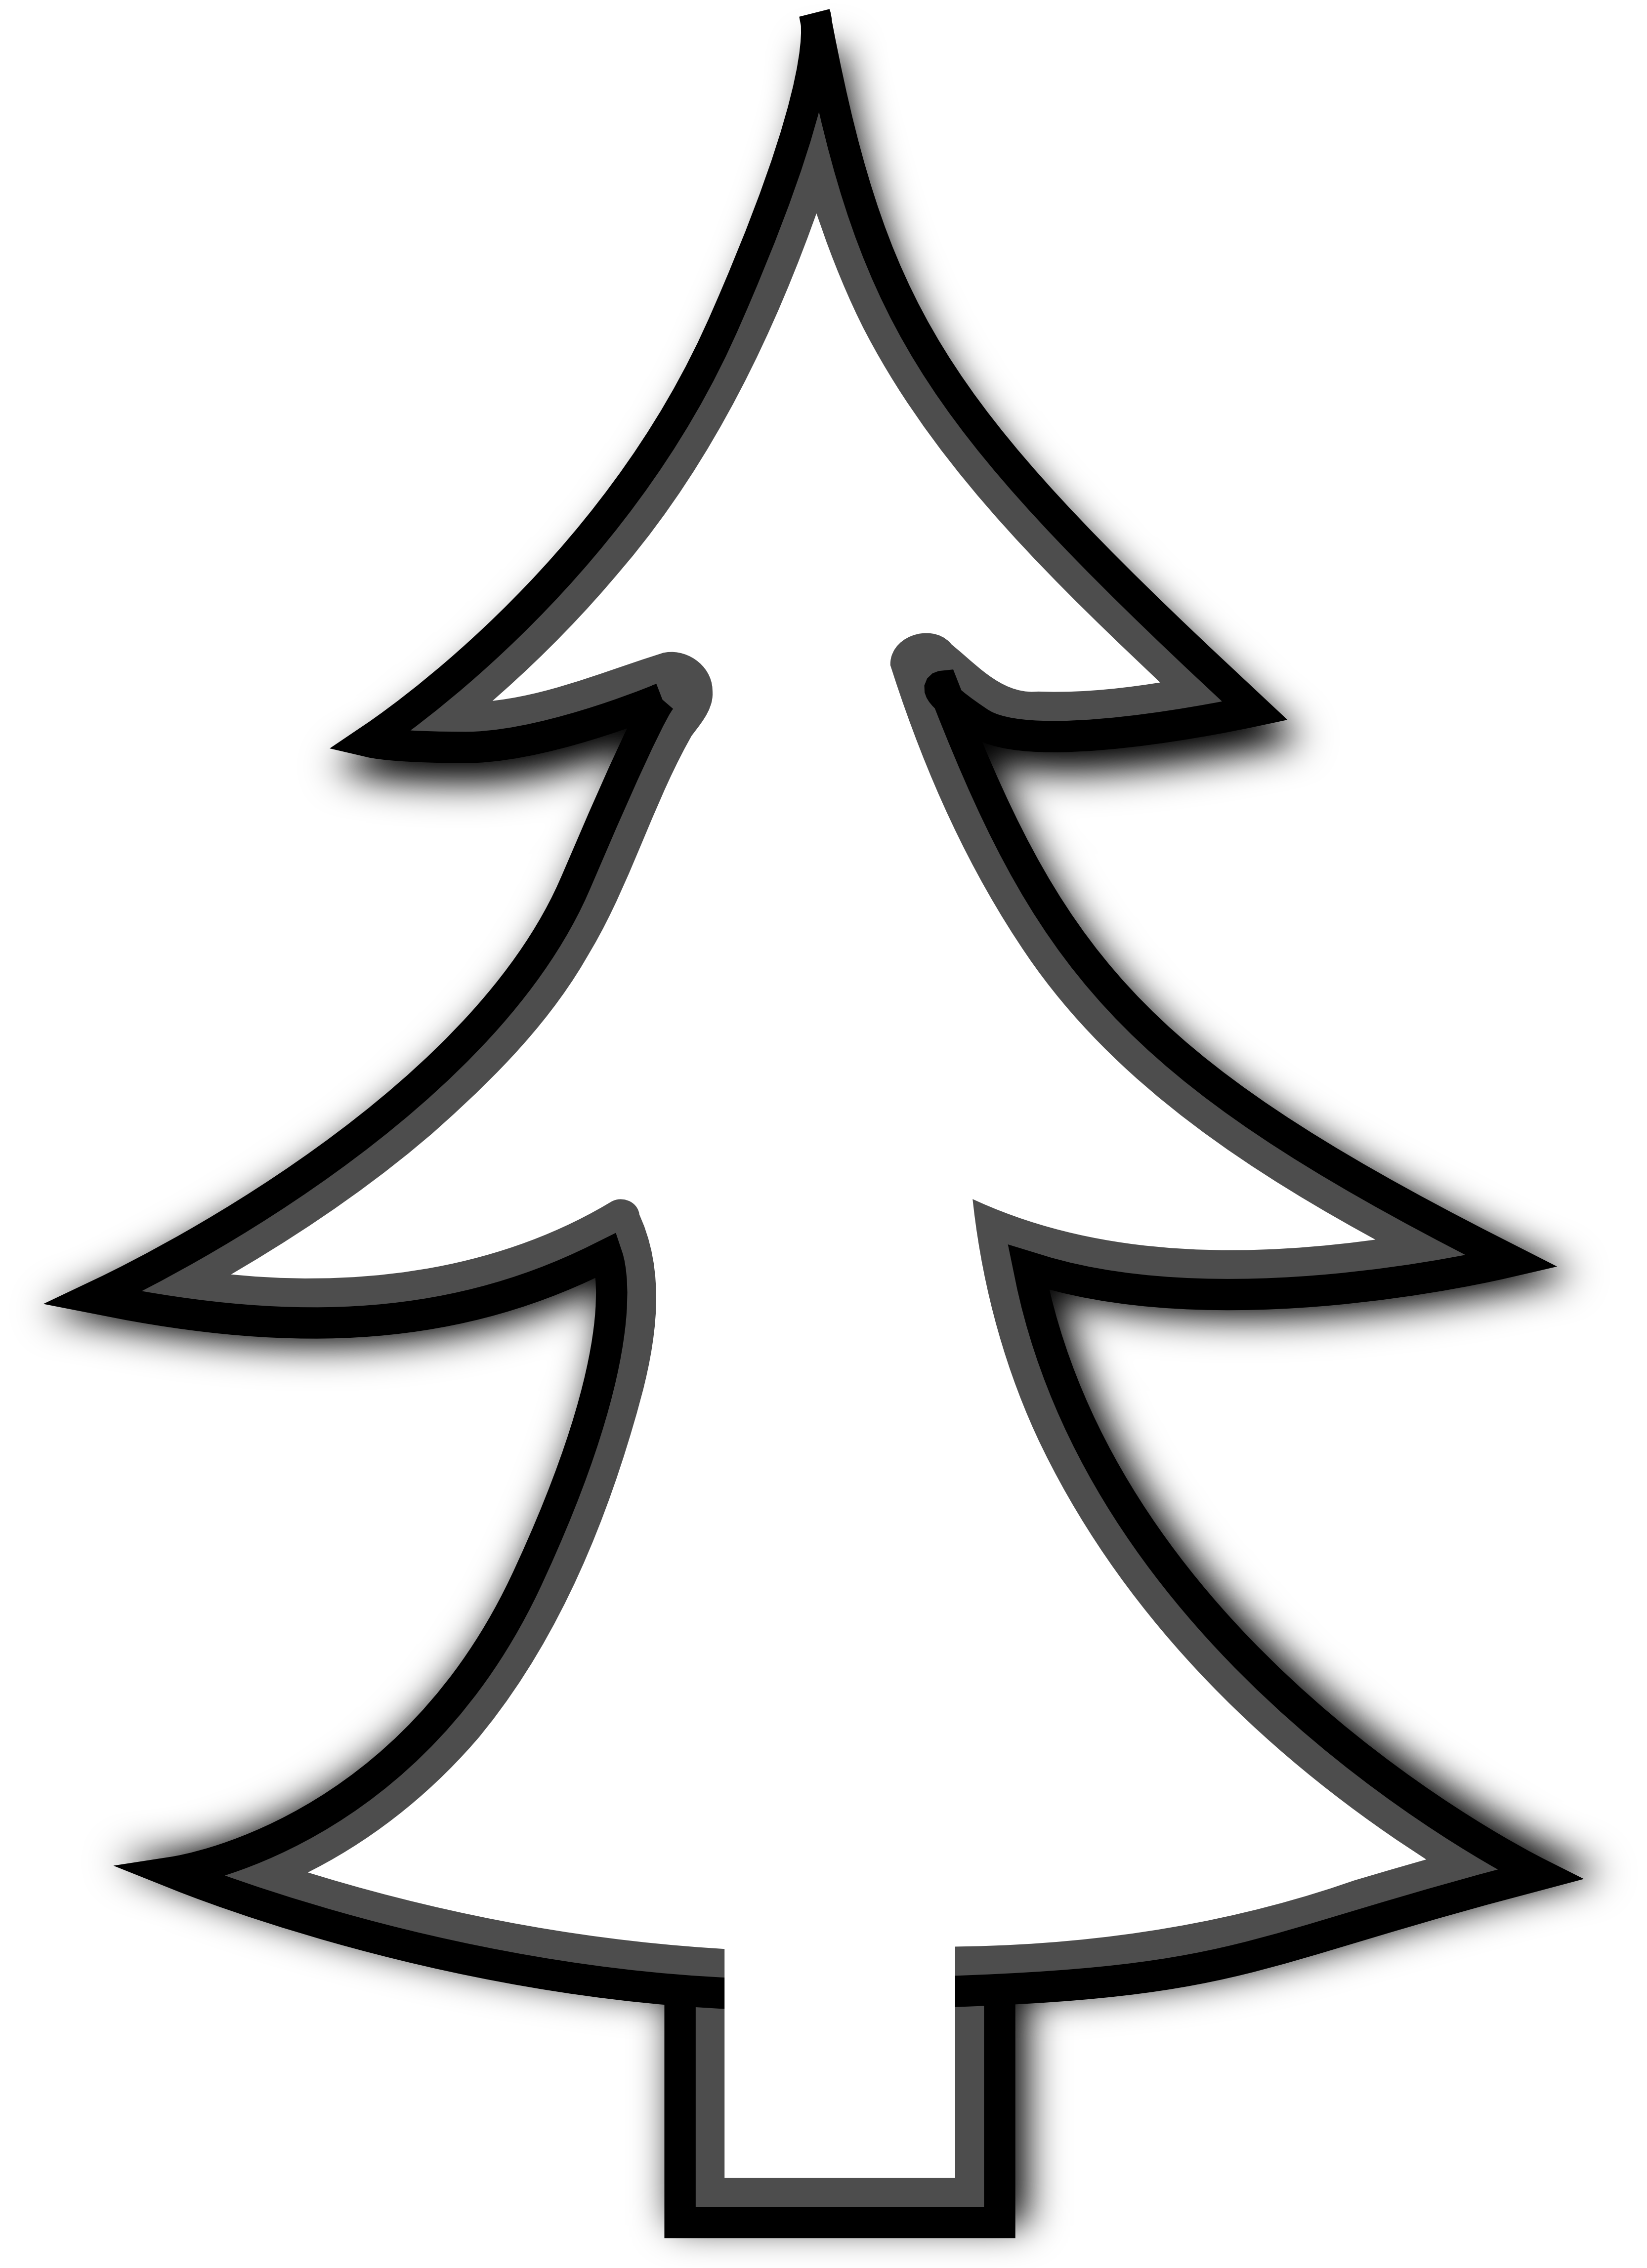 White pine tree white silhouette png. At getdrawings com free